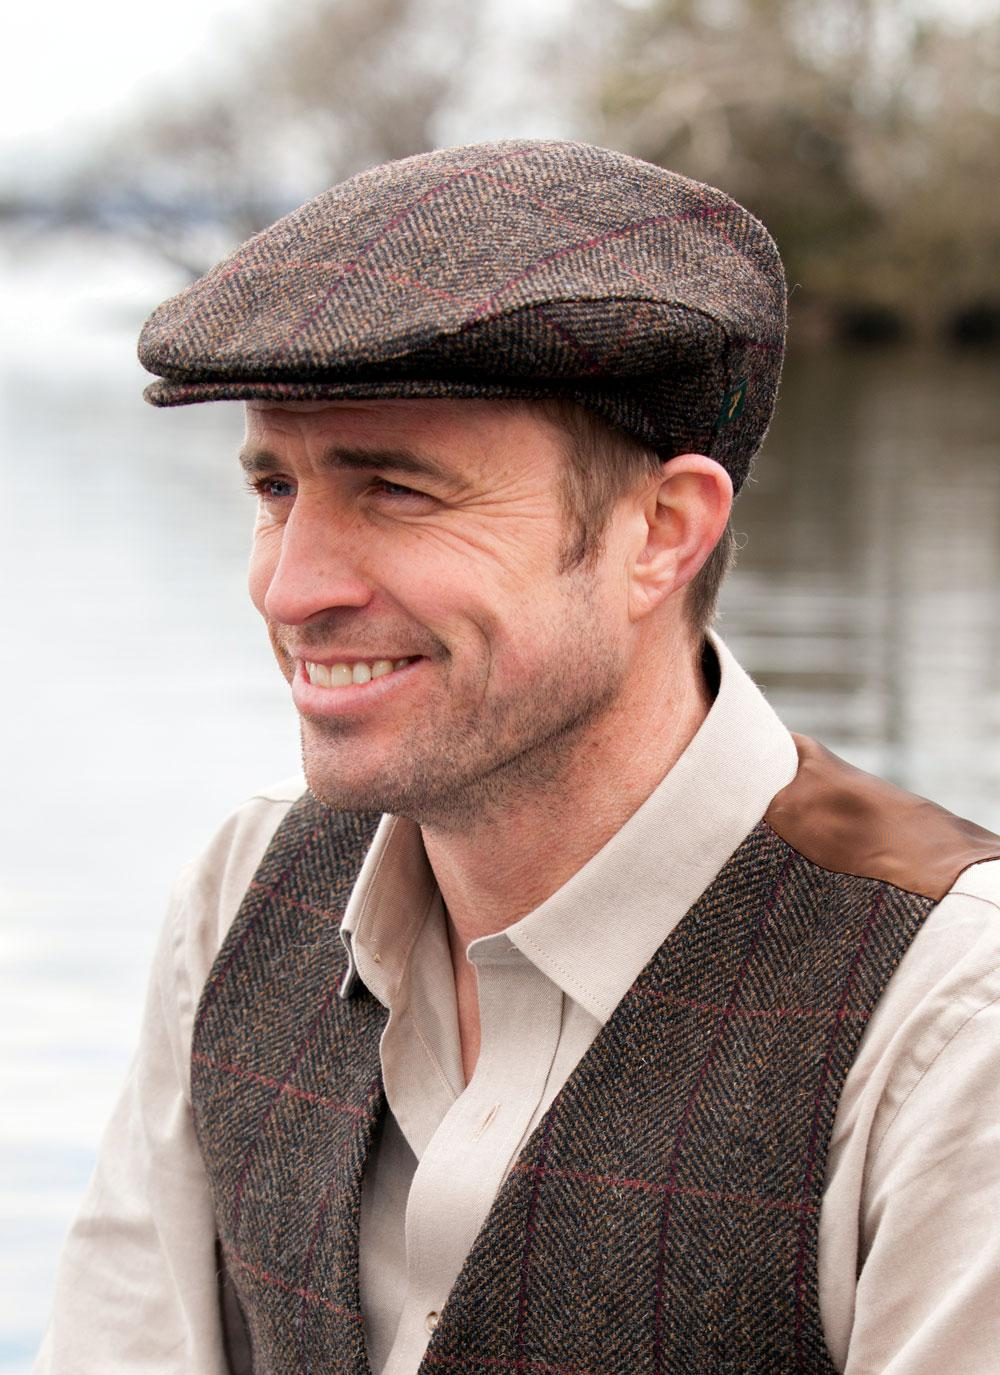 Traditional Flat Caps to Protect Your Irish Roots!